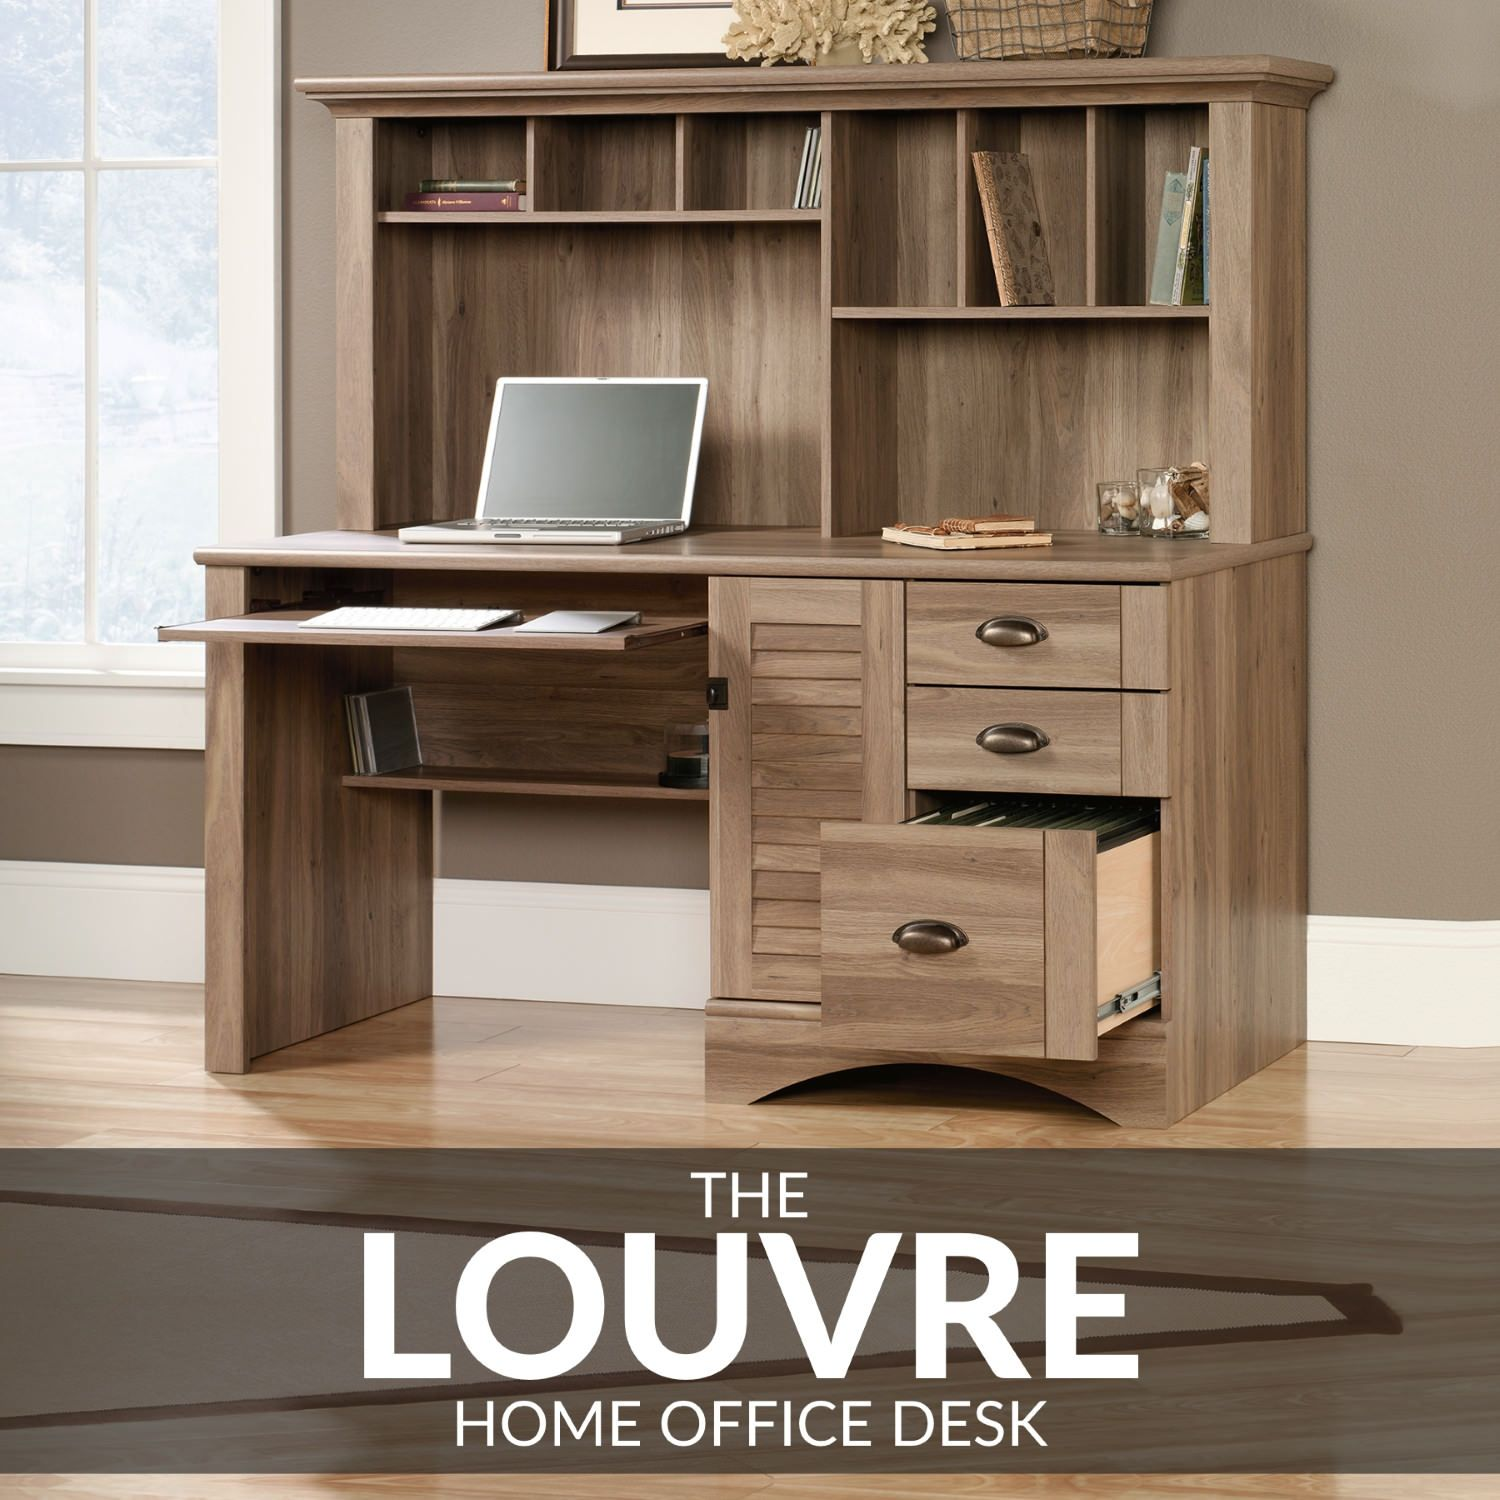 The Louvre Home Office Desk From 121 Home Furniture Home Office Desks Office Desk Wood Corner Desk